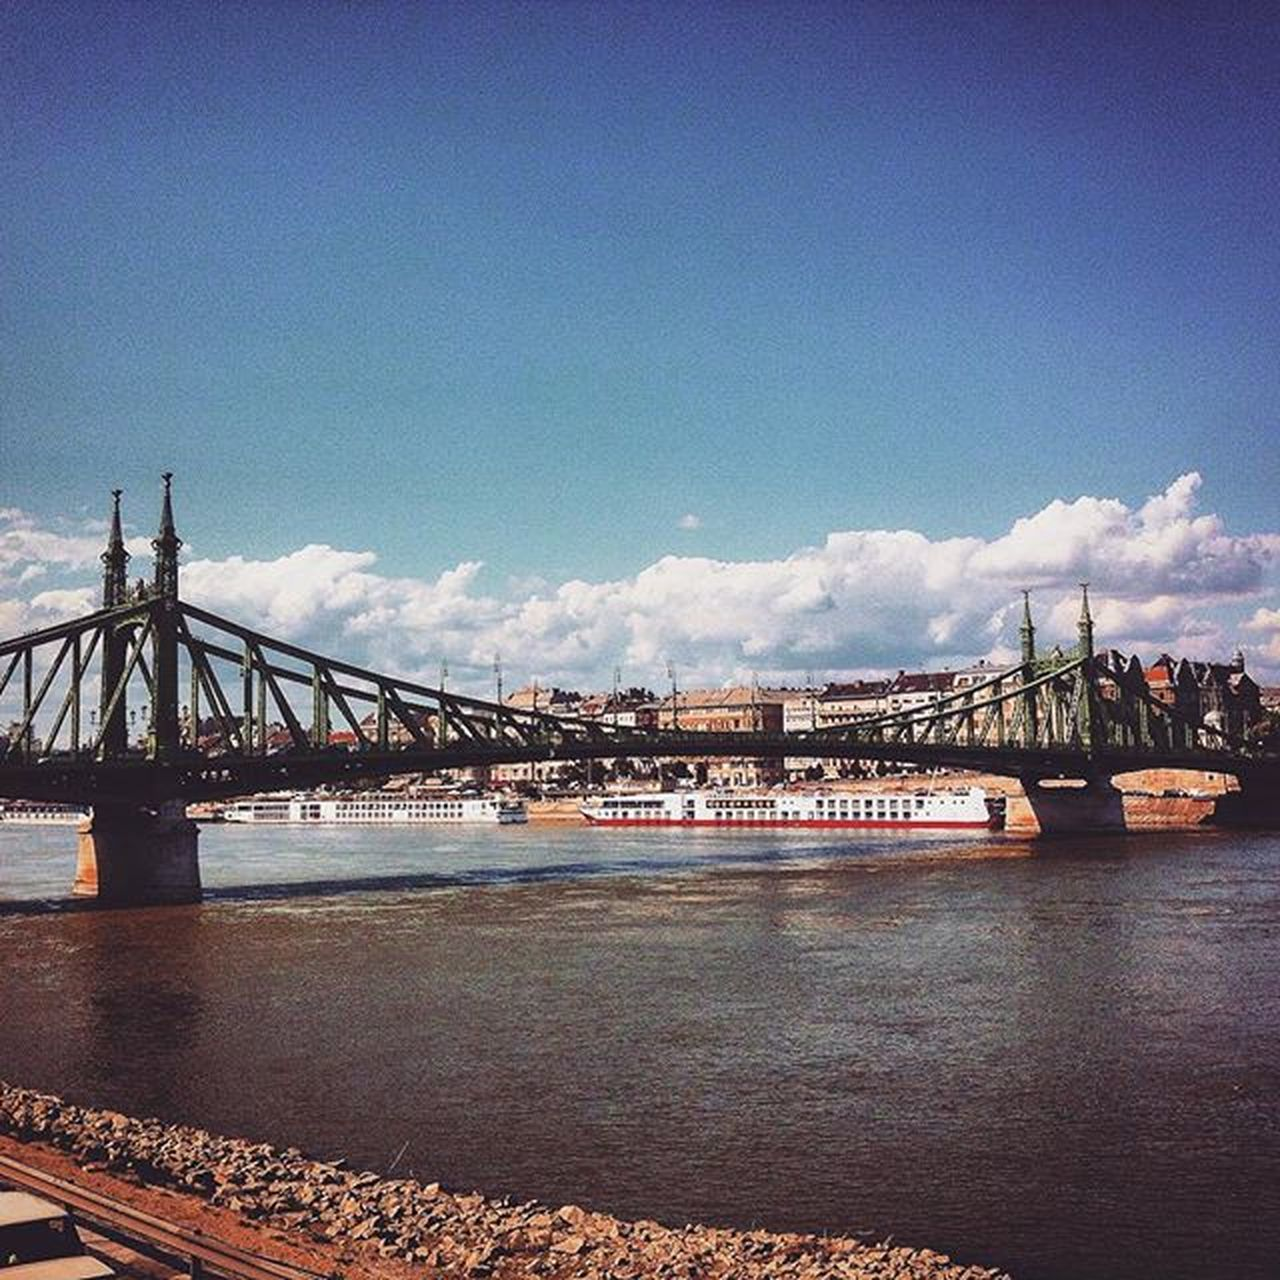 Thereasonwhyilovebudapestsomuch Sky Skyporn Cloud cloudporn blue bridge bridgeofliberty danube dunapart buda Budapest Hungary river waves summer mik mik_summer magyarig magyarorszag loves_hungary ihu ilovebp insta_bp instahun ikozosseg szabadsaghid onlyiphone landscape